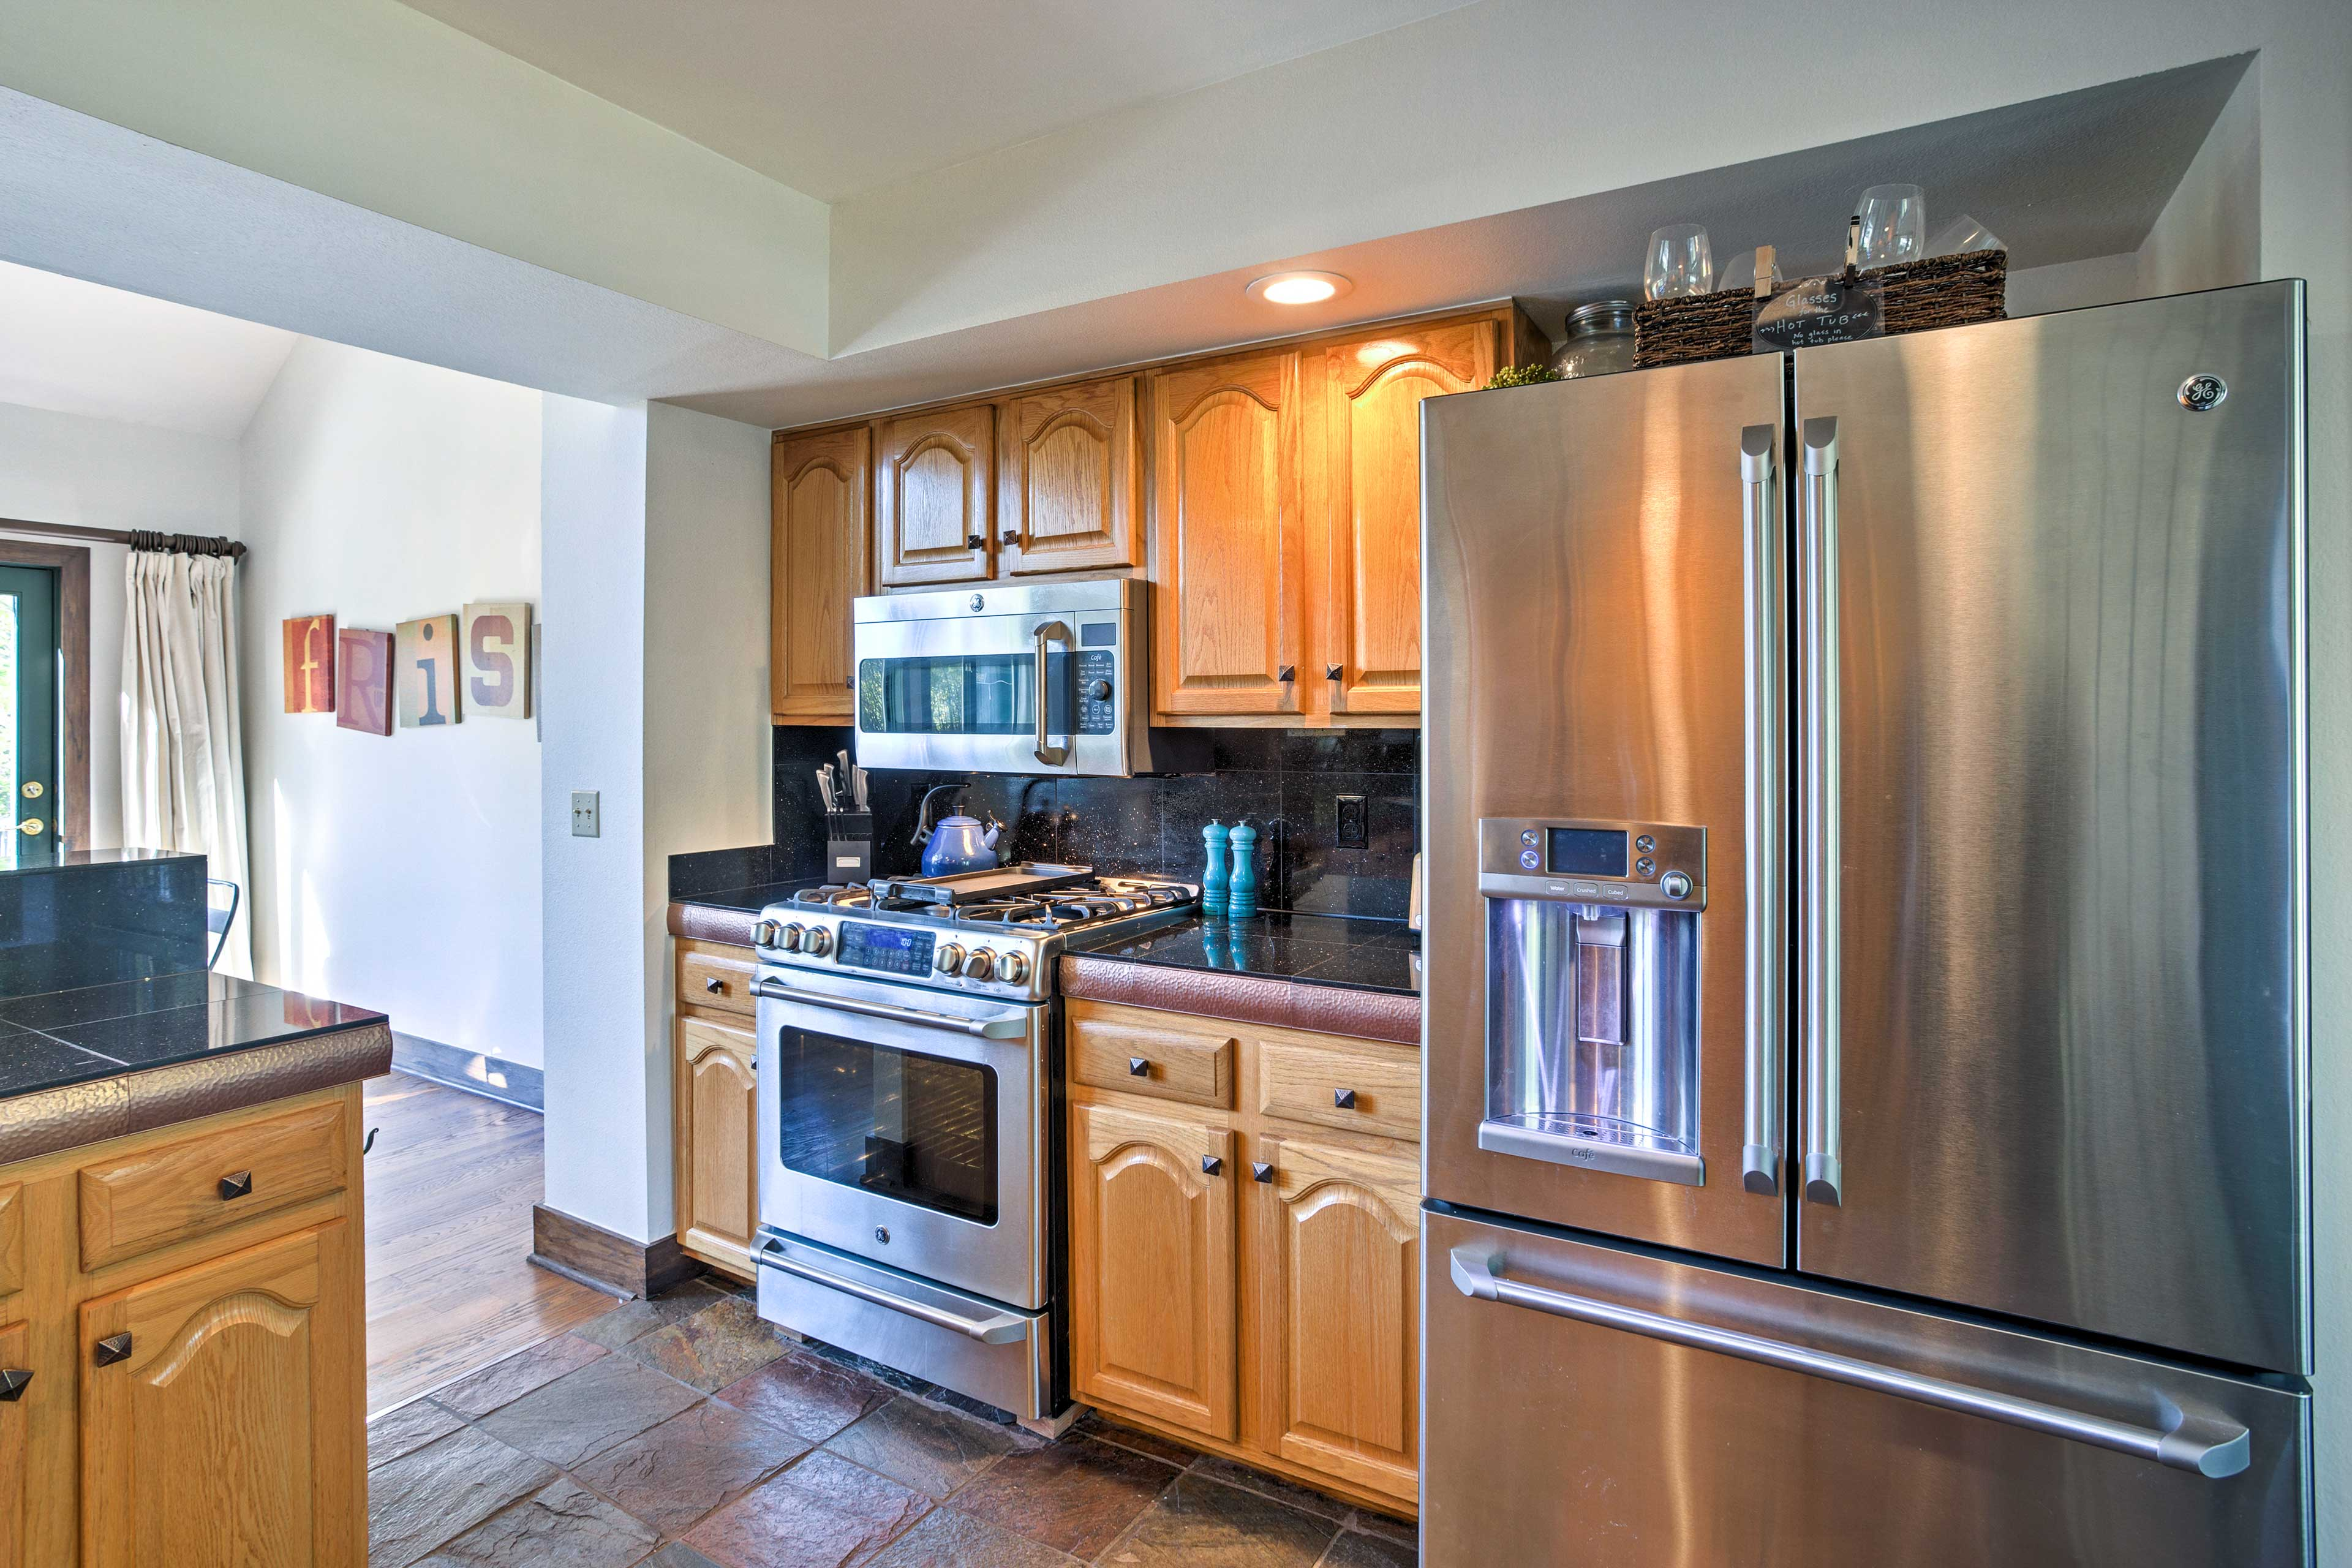 Prepare delectable meals in the fully equipped kitchen with stainless steel appliances.